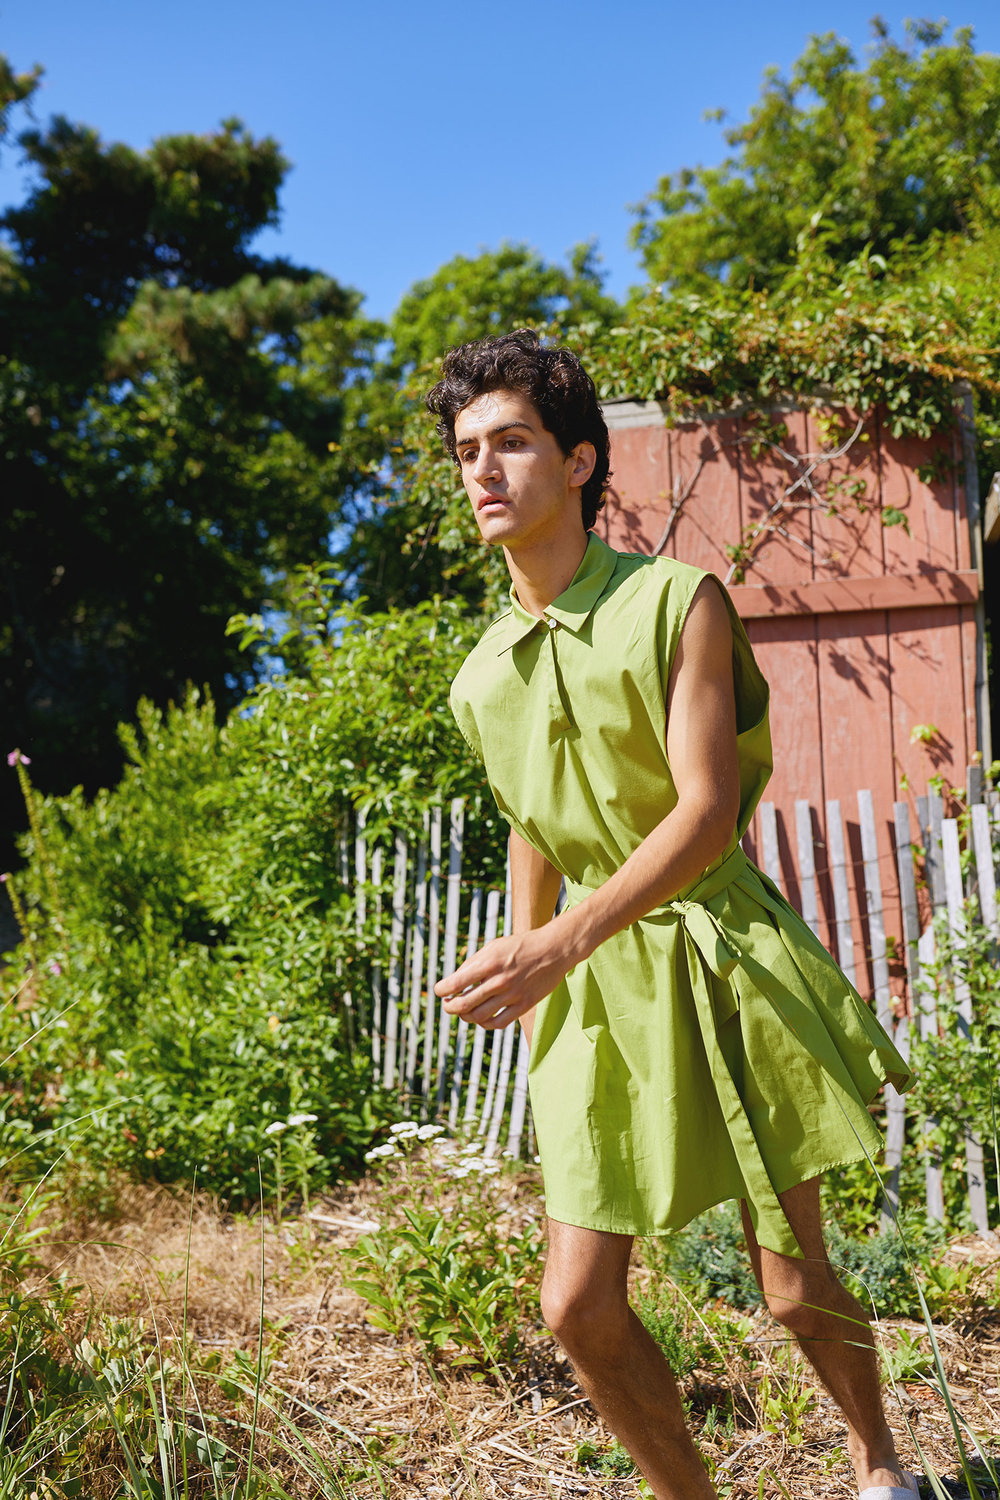 One DNA's Gender-neutral Tunic Photographed at the Fire Island Pines